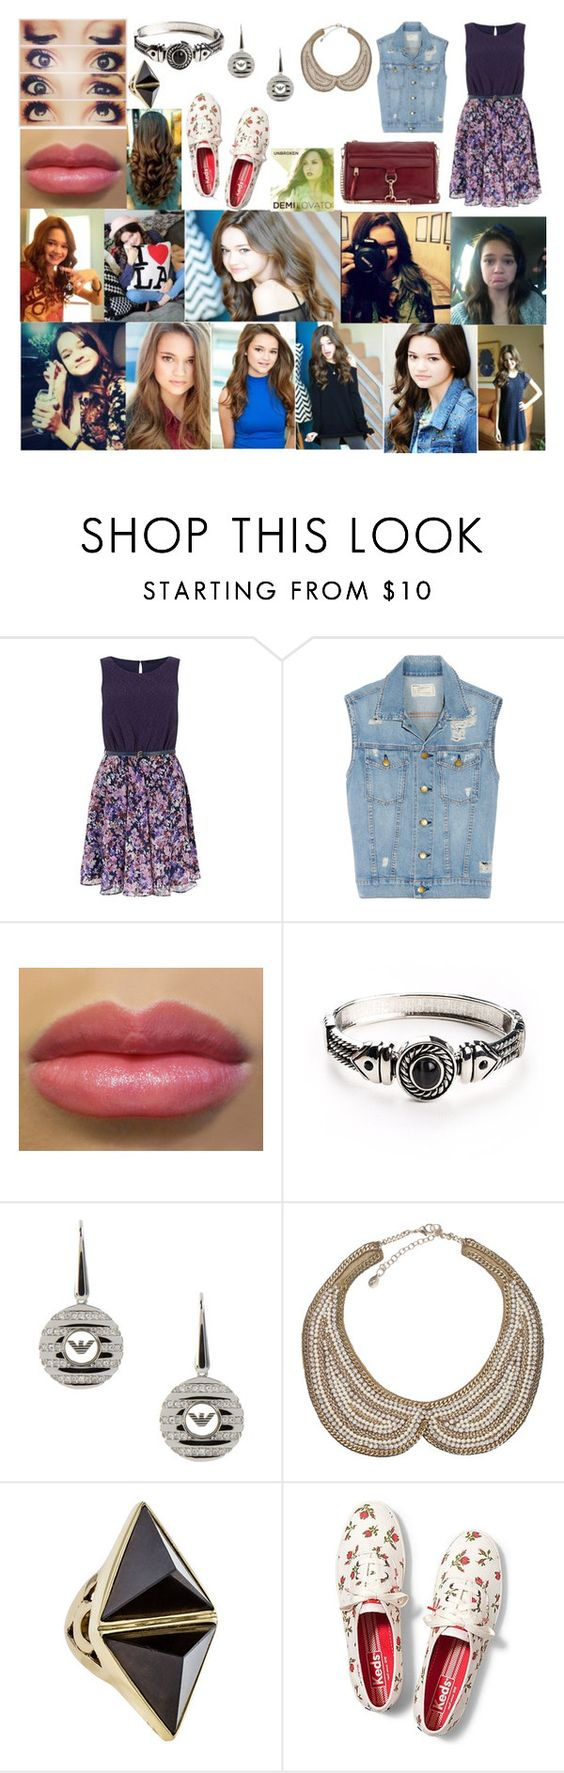 """""""Untitled #250"""" by trustsalvatore ❤ liked on Polyvore featuring Current/Elliott, Emporio Armani, Zimmermann, Keds and Rebecca Minkoff"""